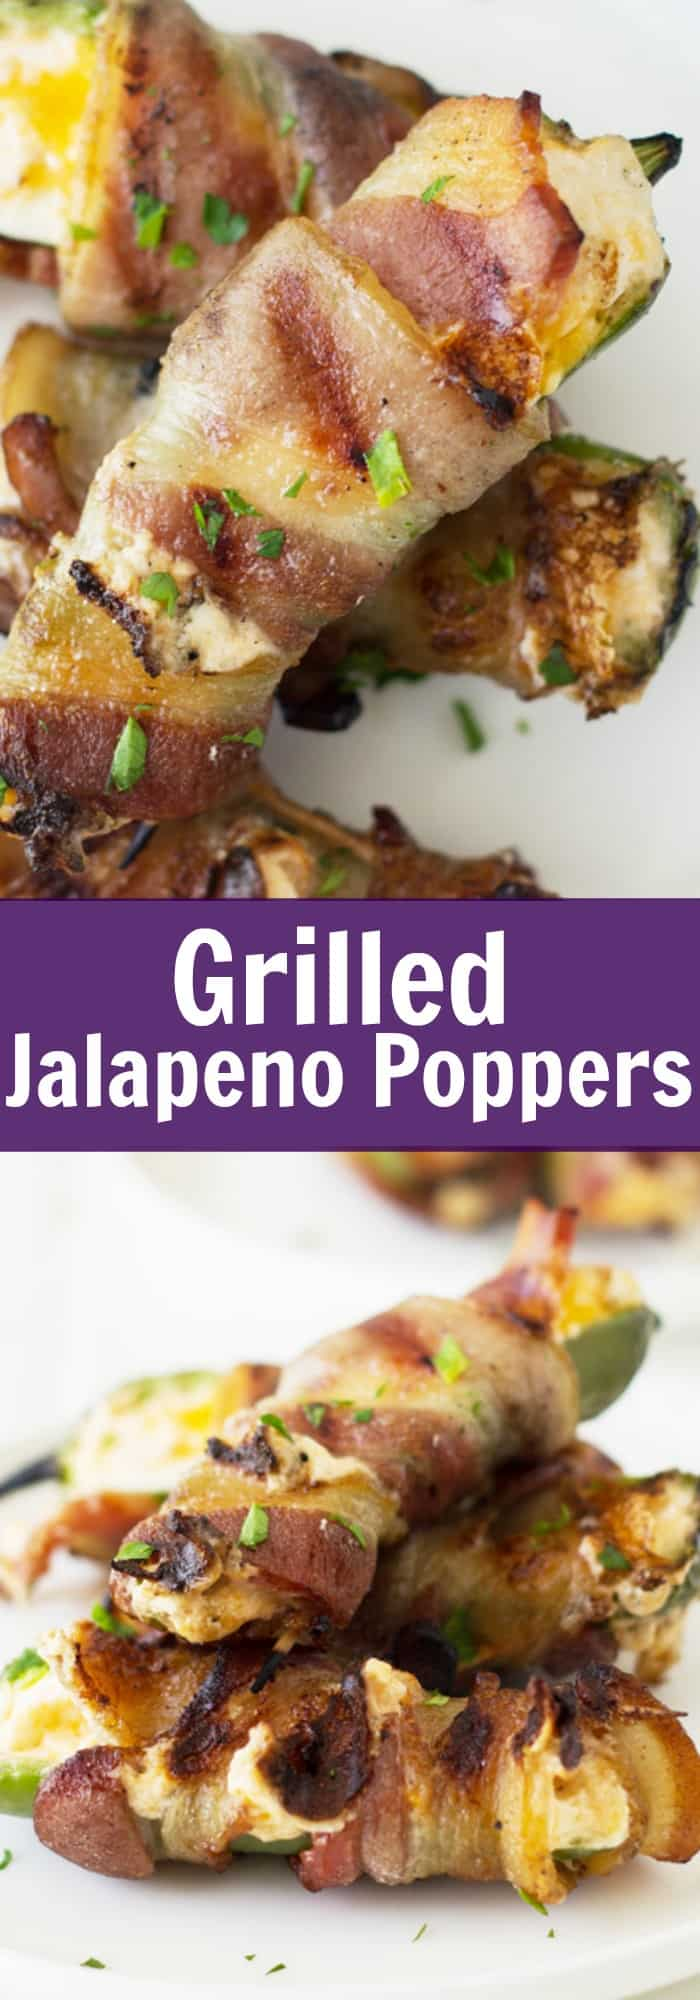 how to cook poppers on the grilled